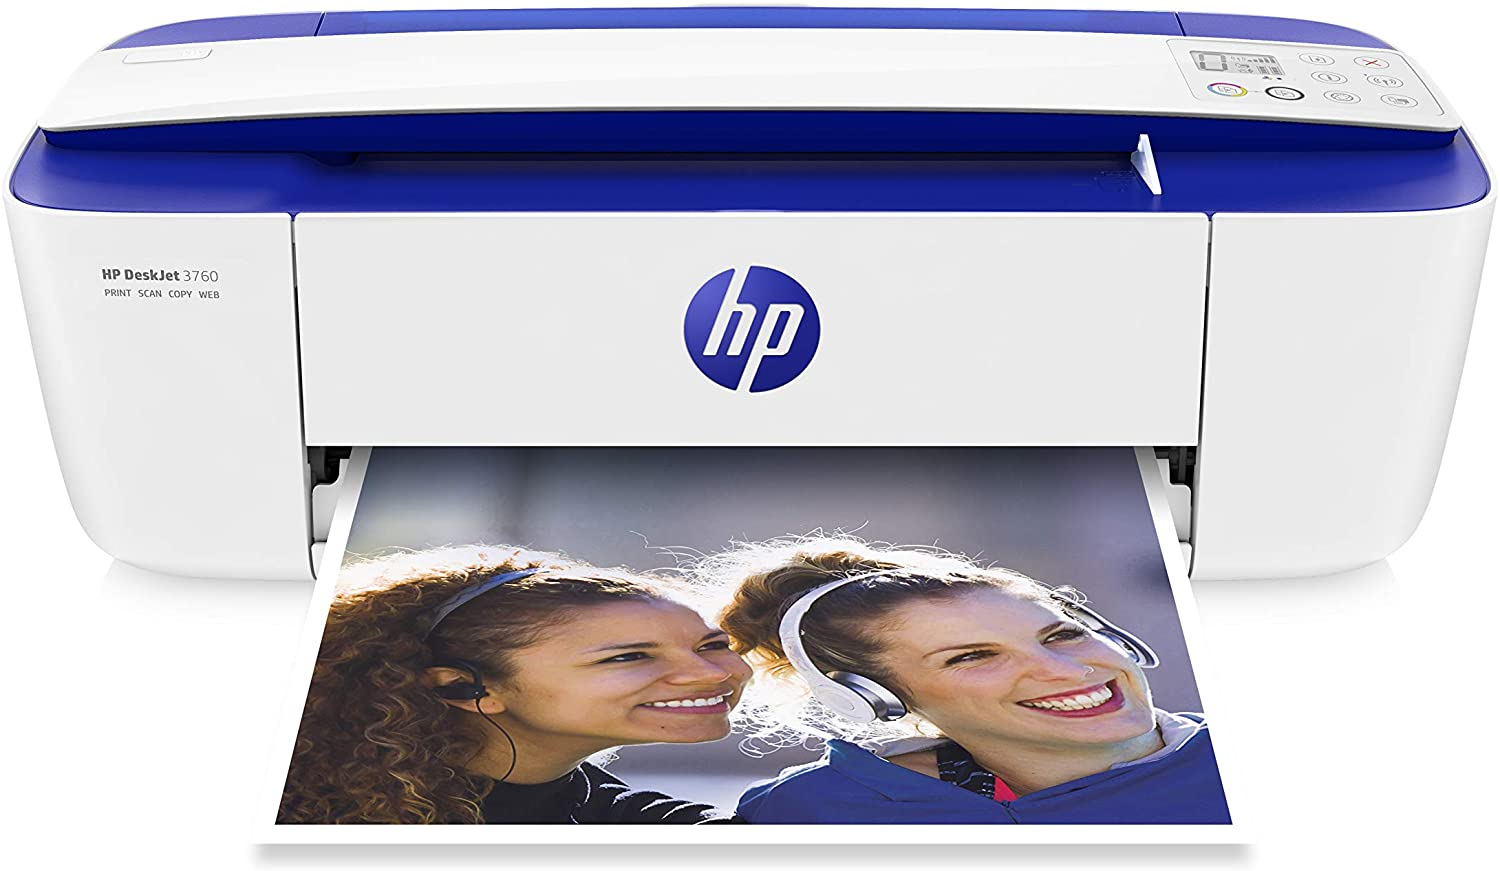 HP DeskJet 3760 All-in-One Printer, Instant Ink with 2 Months Trial uk reviews